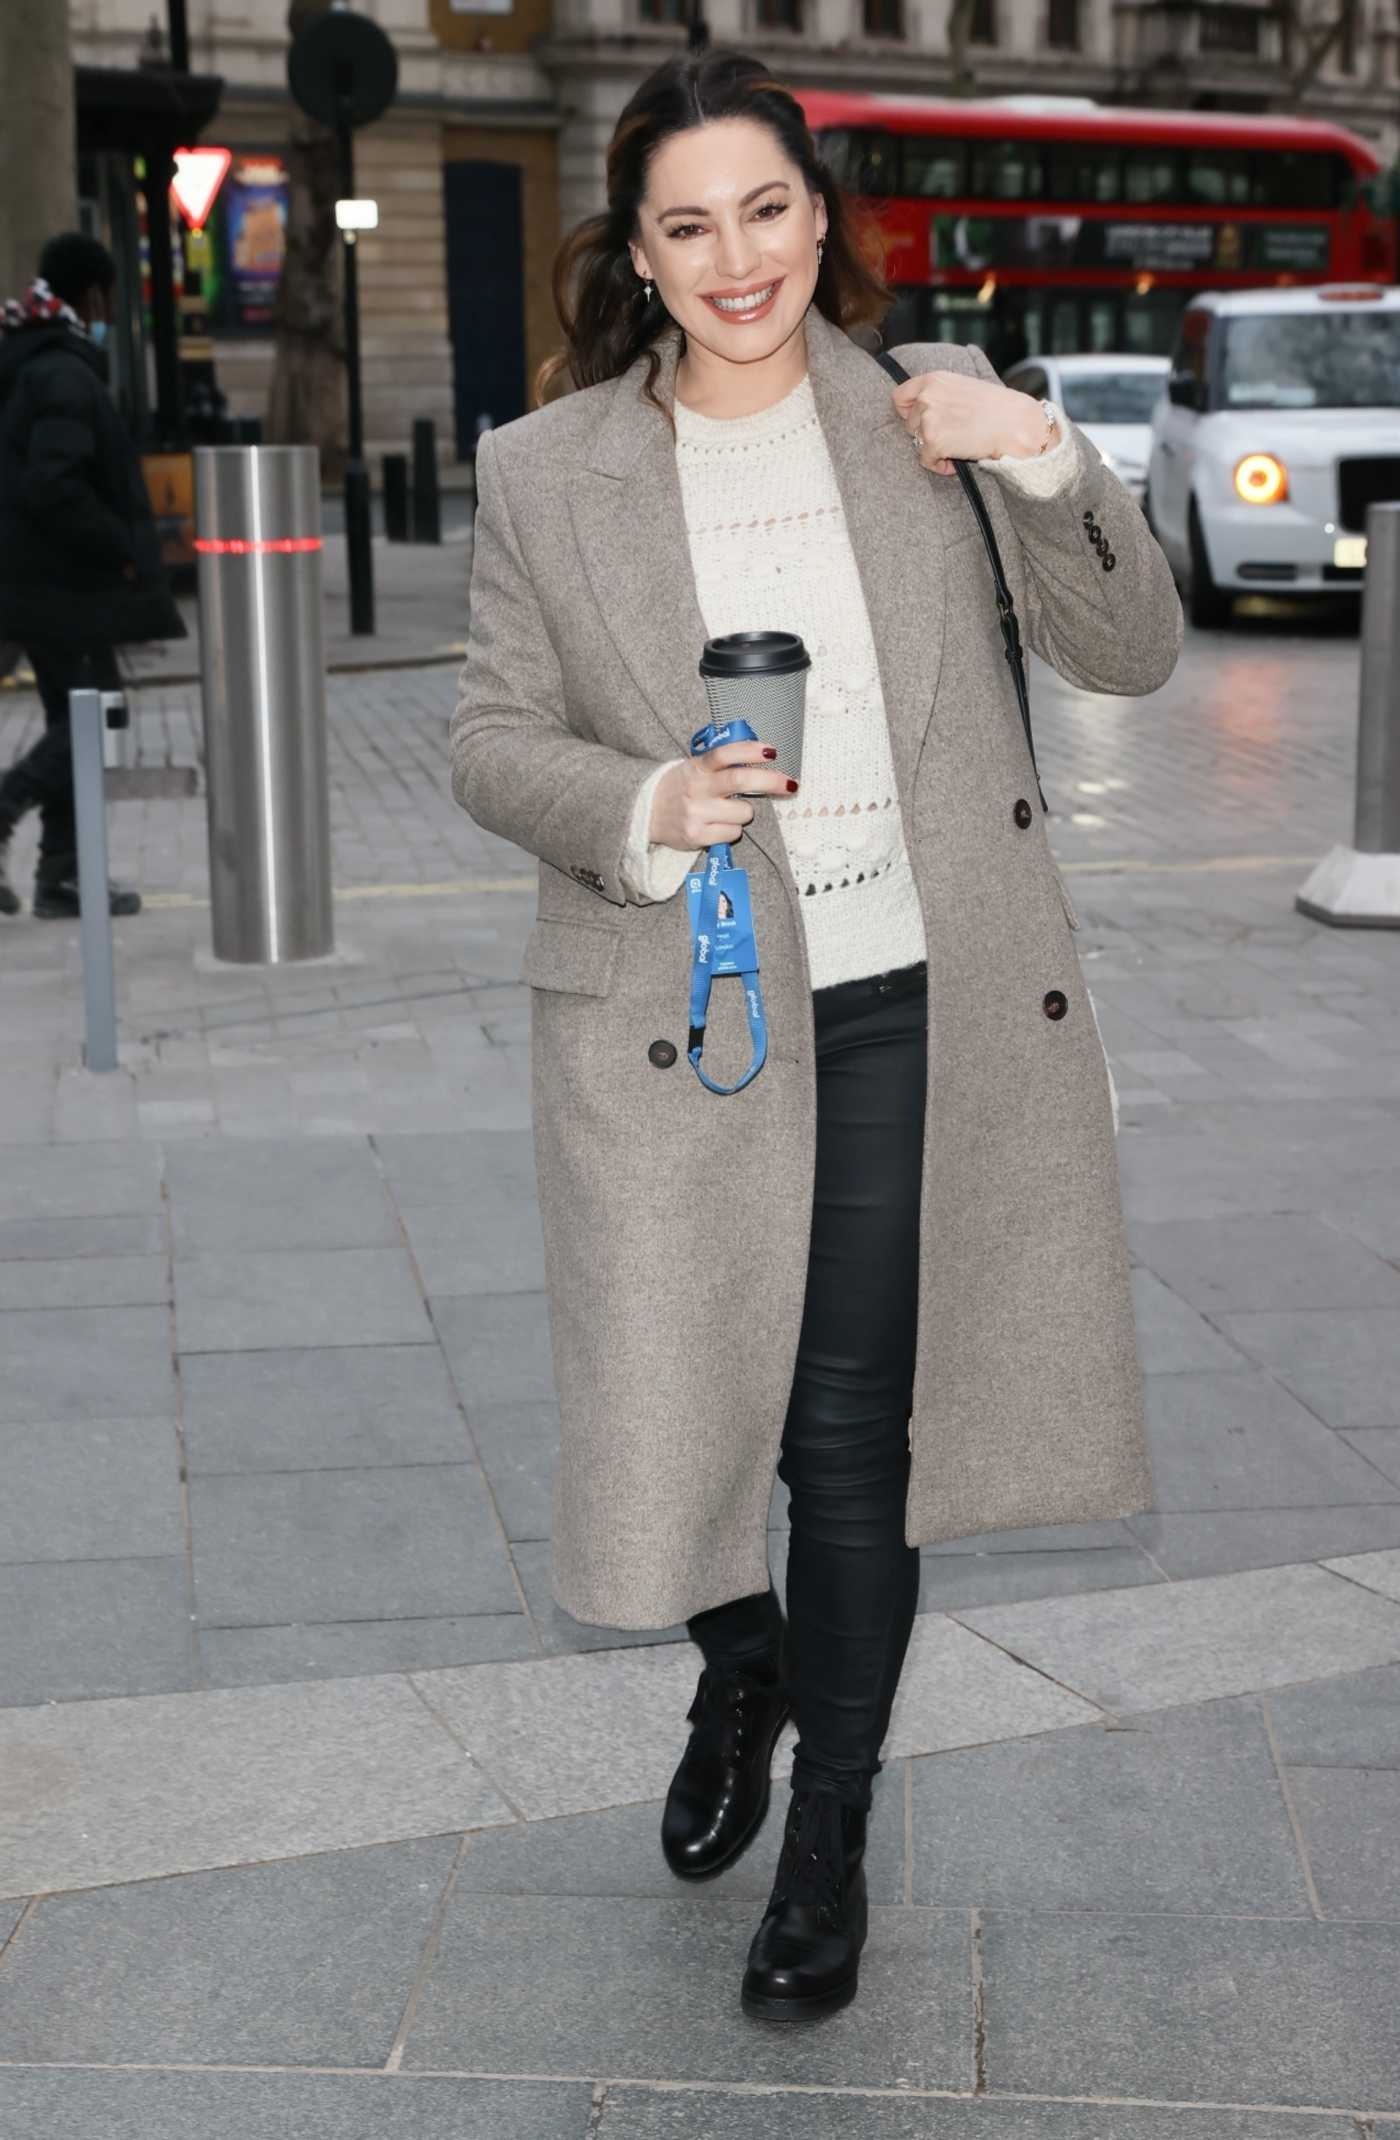 Kelly Brook in a Grey Coat Arrives at the Global Radio Studios in London 01/22/2021